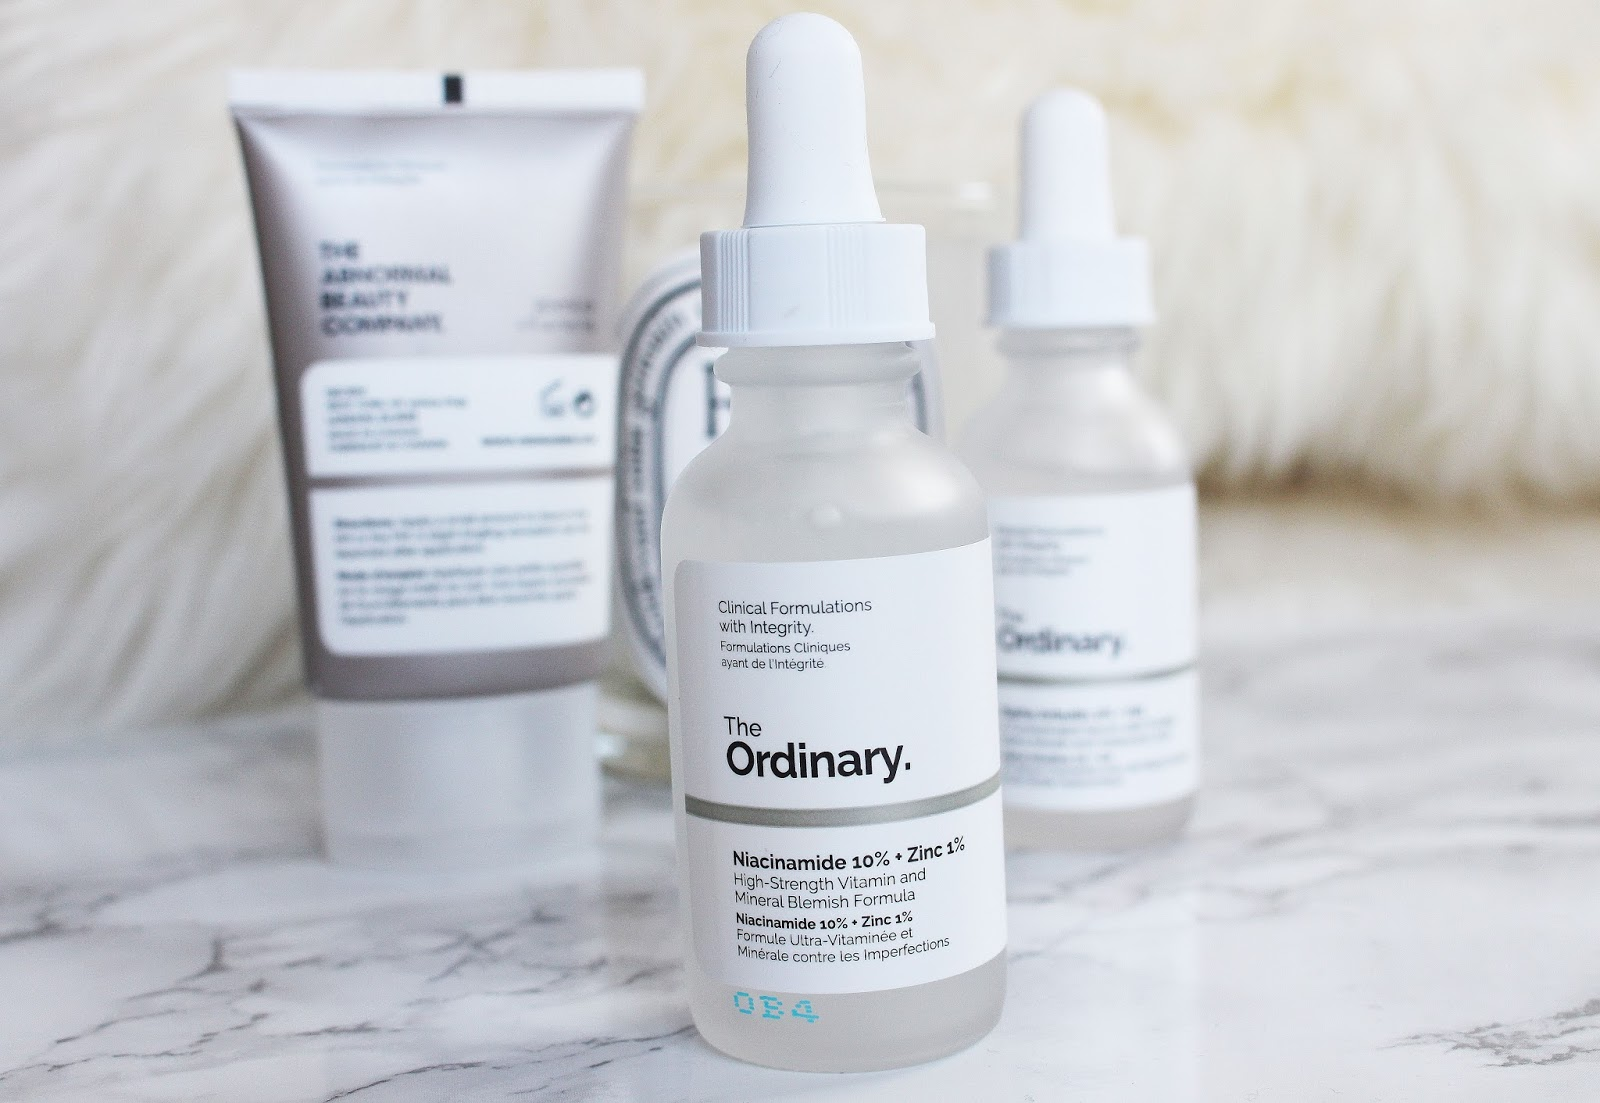 the ordinary skincare, the ordinary, the ordinary uk, the ordinary review uk, asos beauty, cheap skincare, quick blemish fix, skincare routine 2017